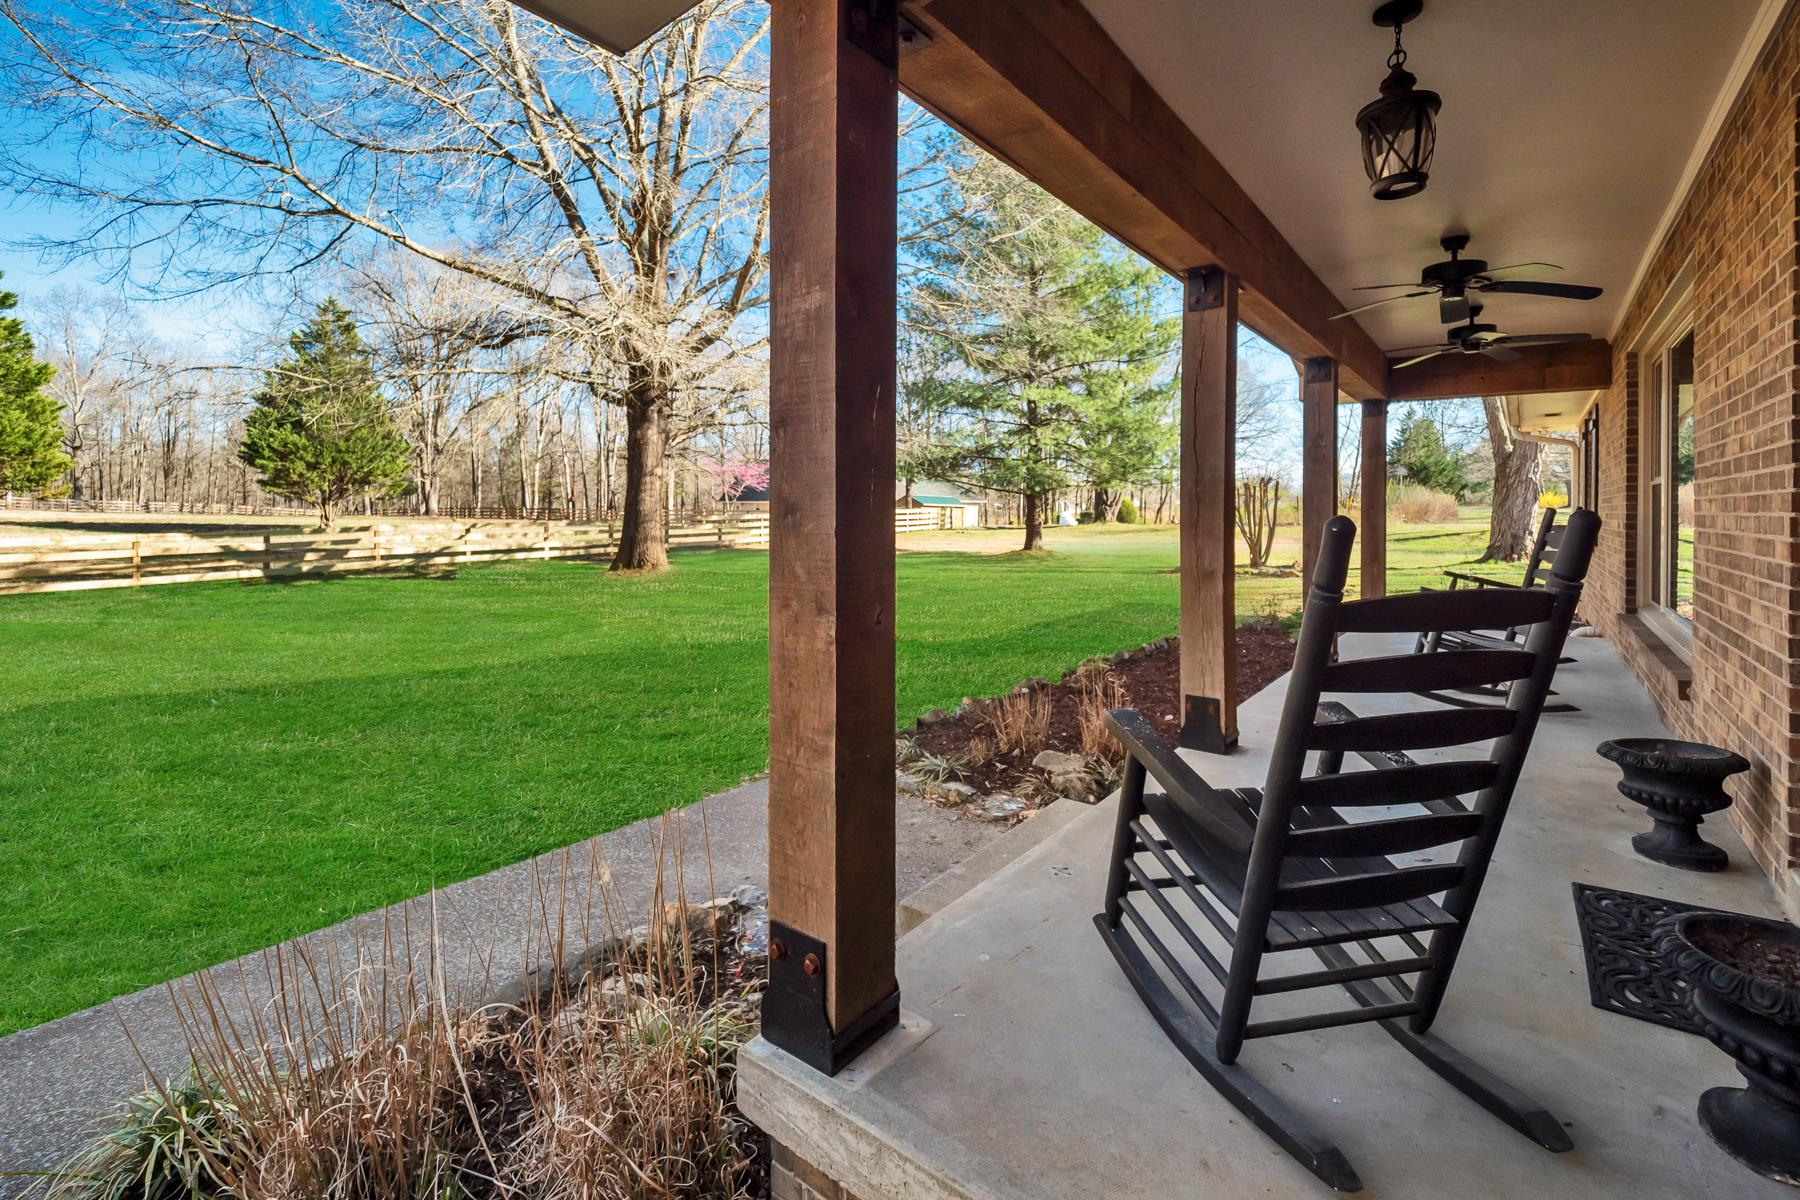 7135 Hill Hughes Rd, Fairview in Williamson County County, TN 37062 Home for Sale